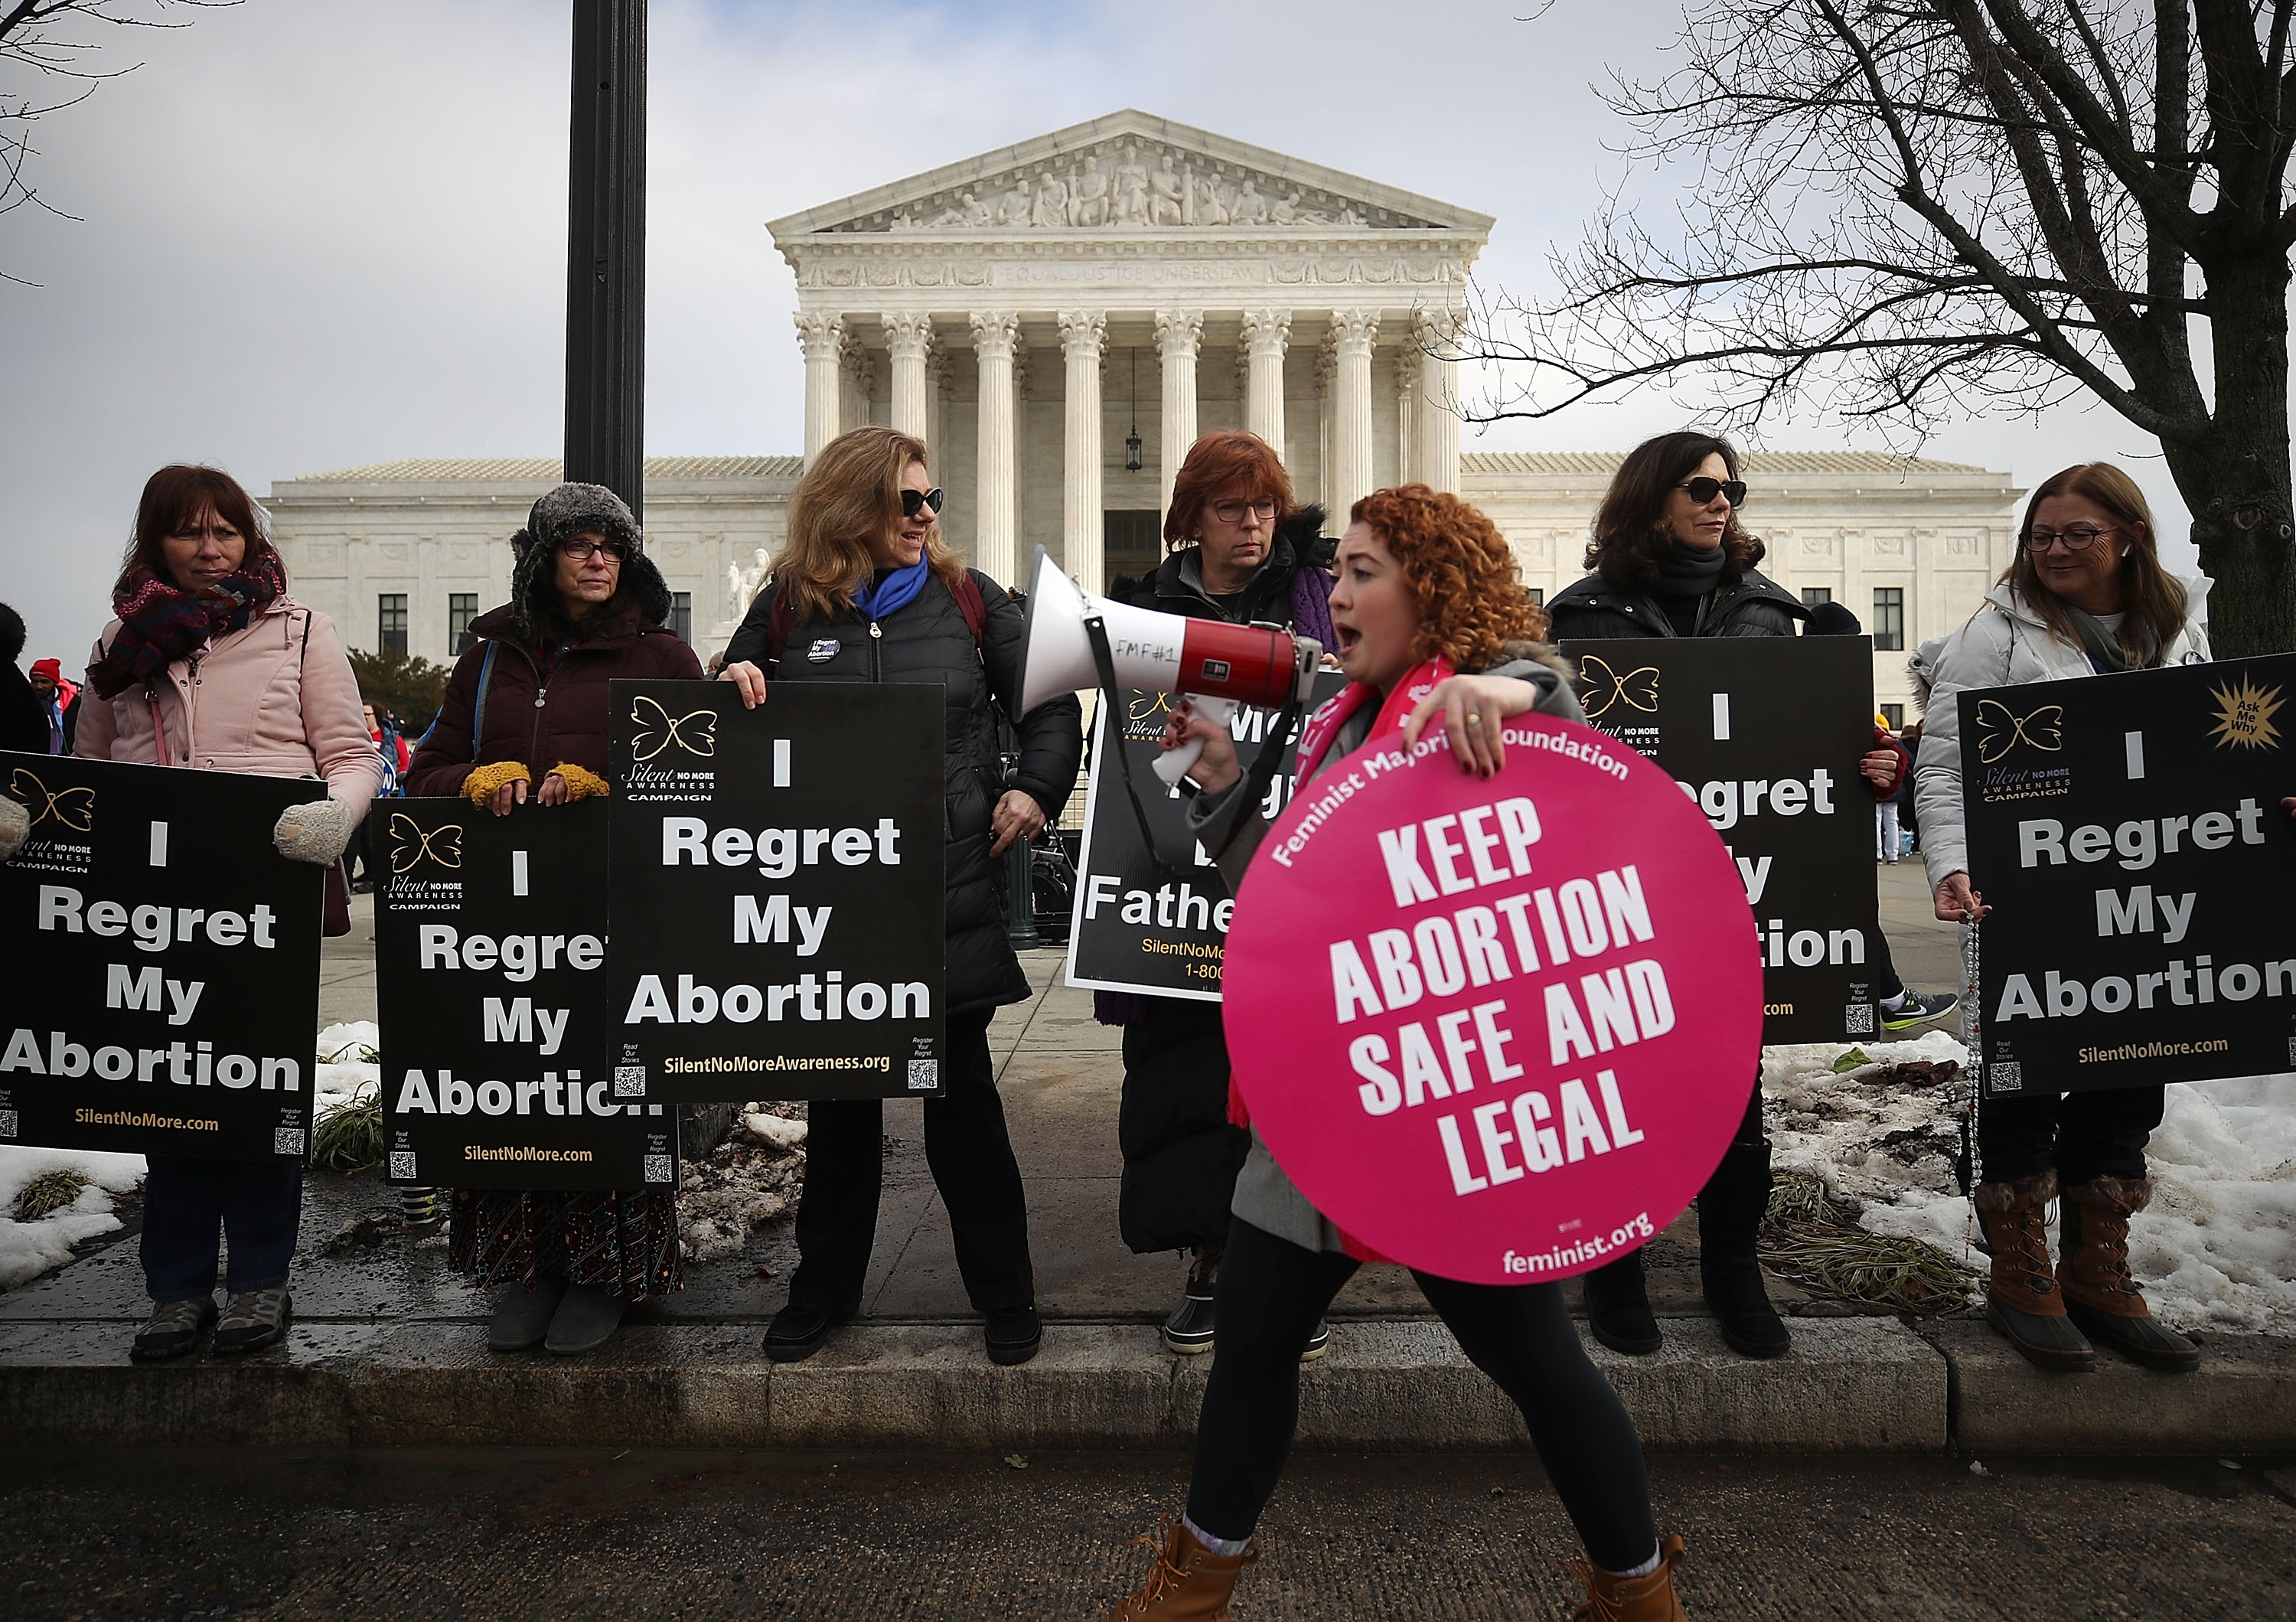 Recent abortion bans will impact poor people and people of color most